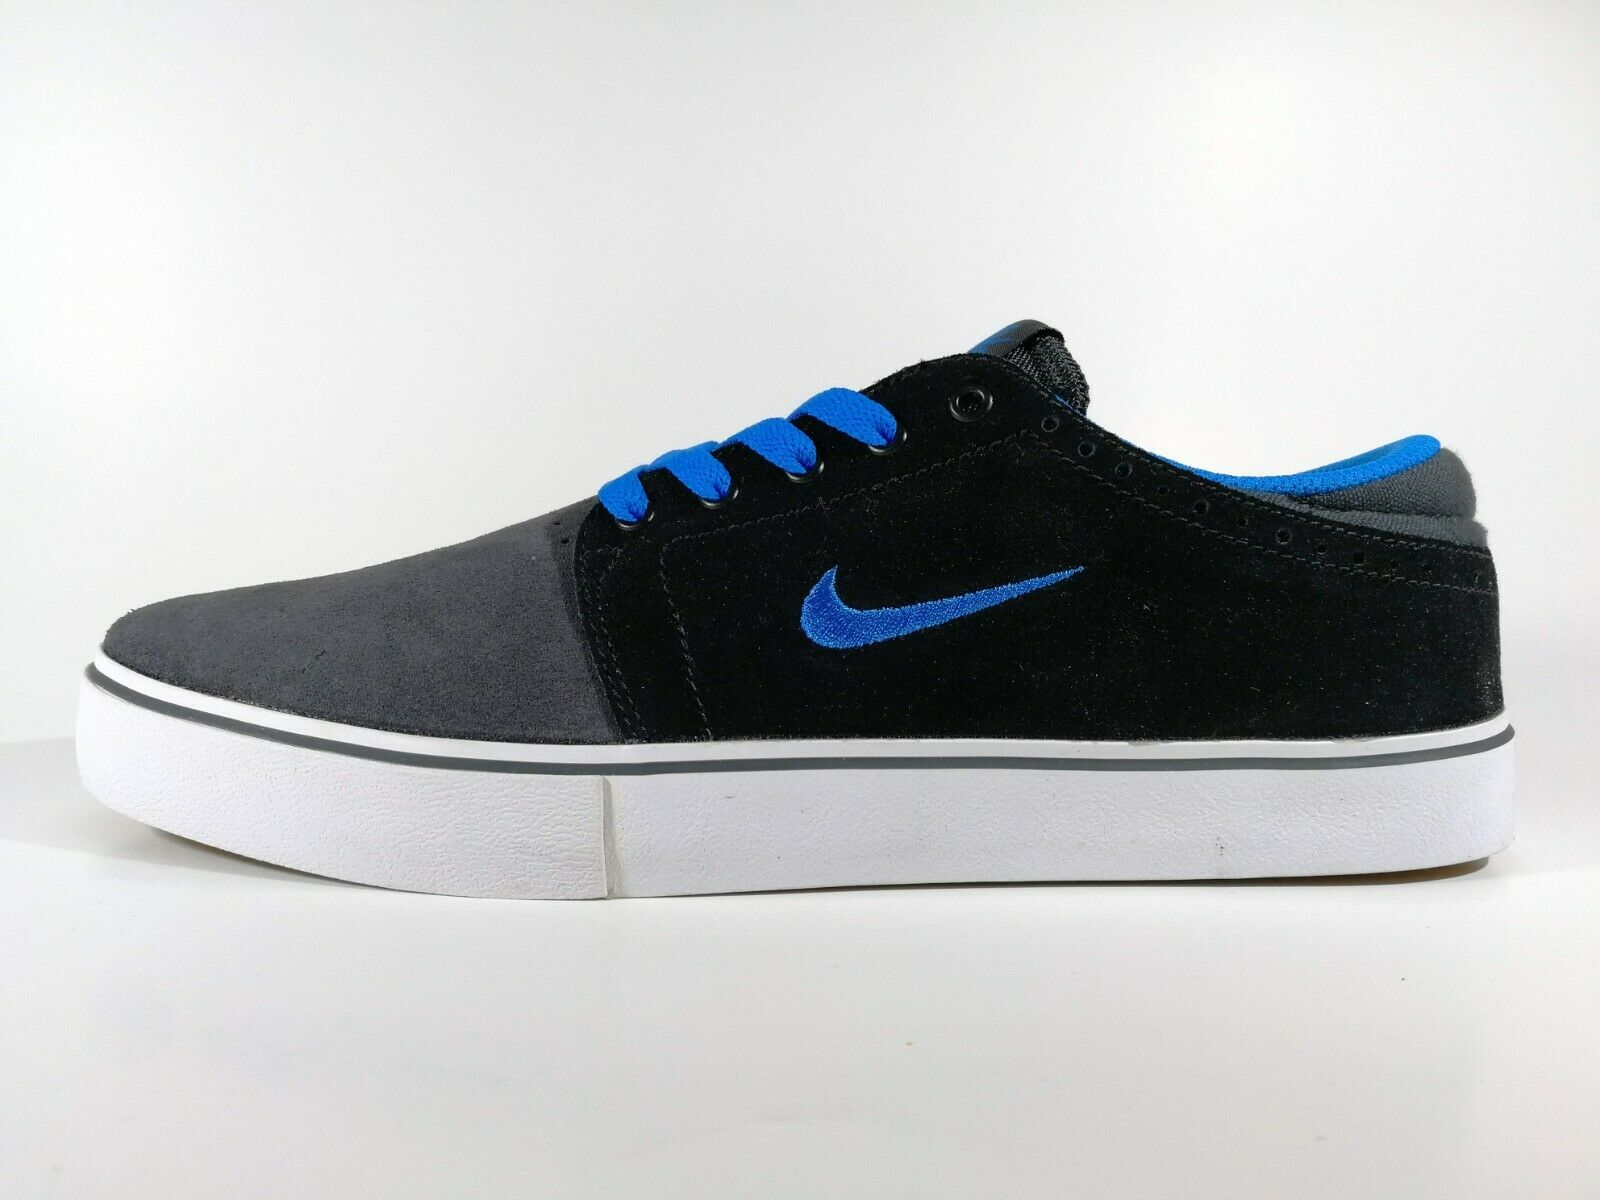 Nike SB Team Edition shoes Size 10US 44EU New with box